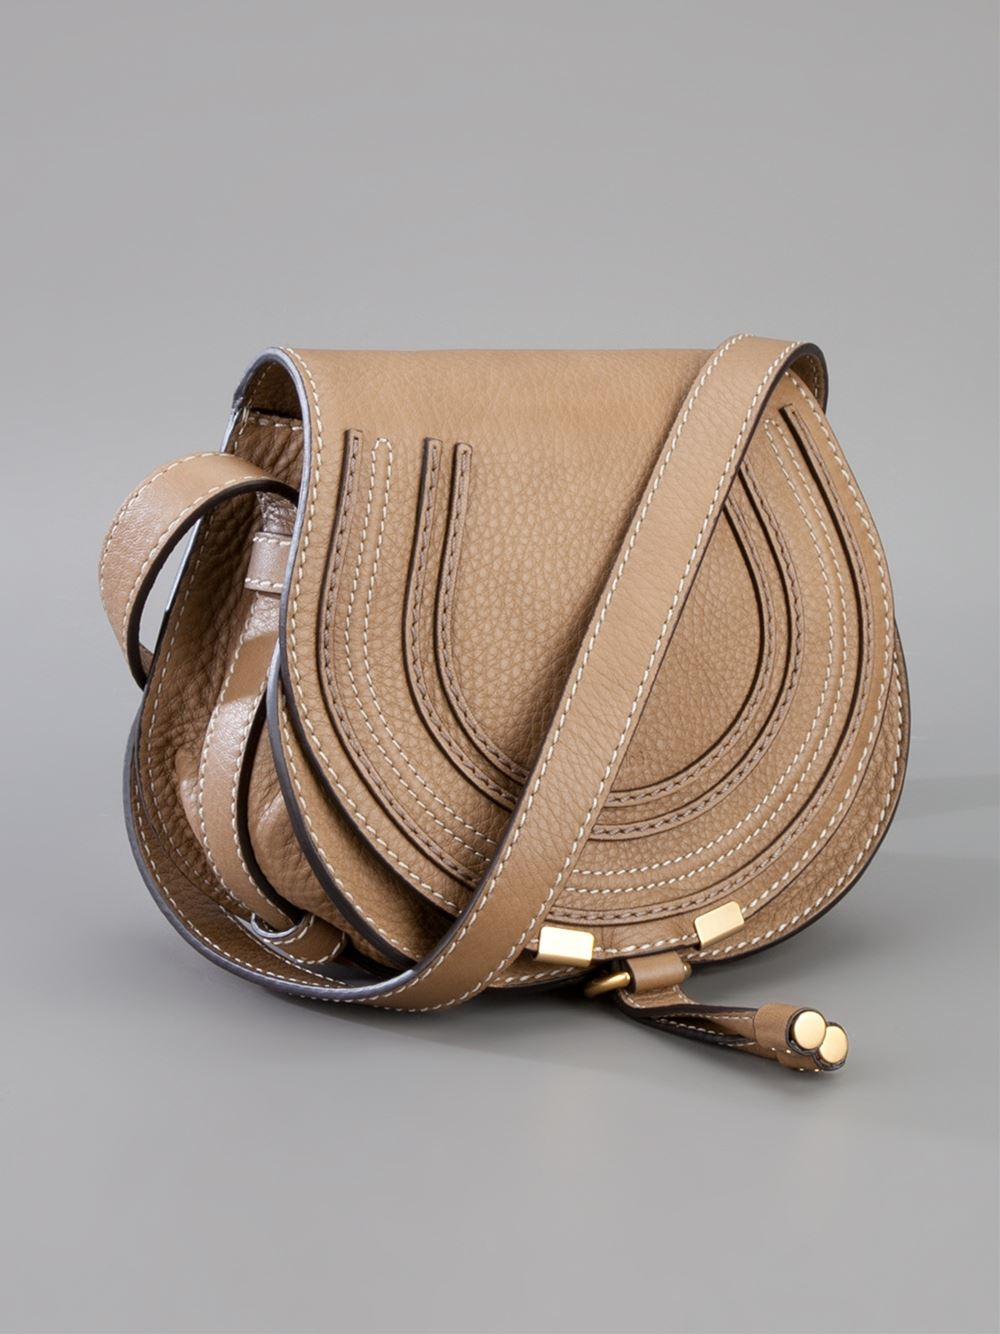 see by chloe bags shop online - chloe marcie medium saddle bag - nut, cheap chloe bags uk